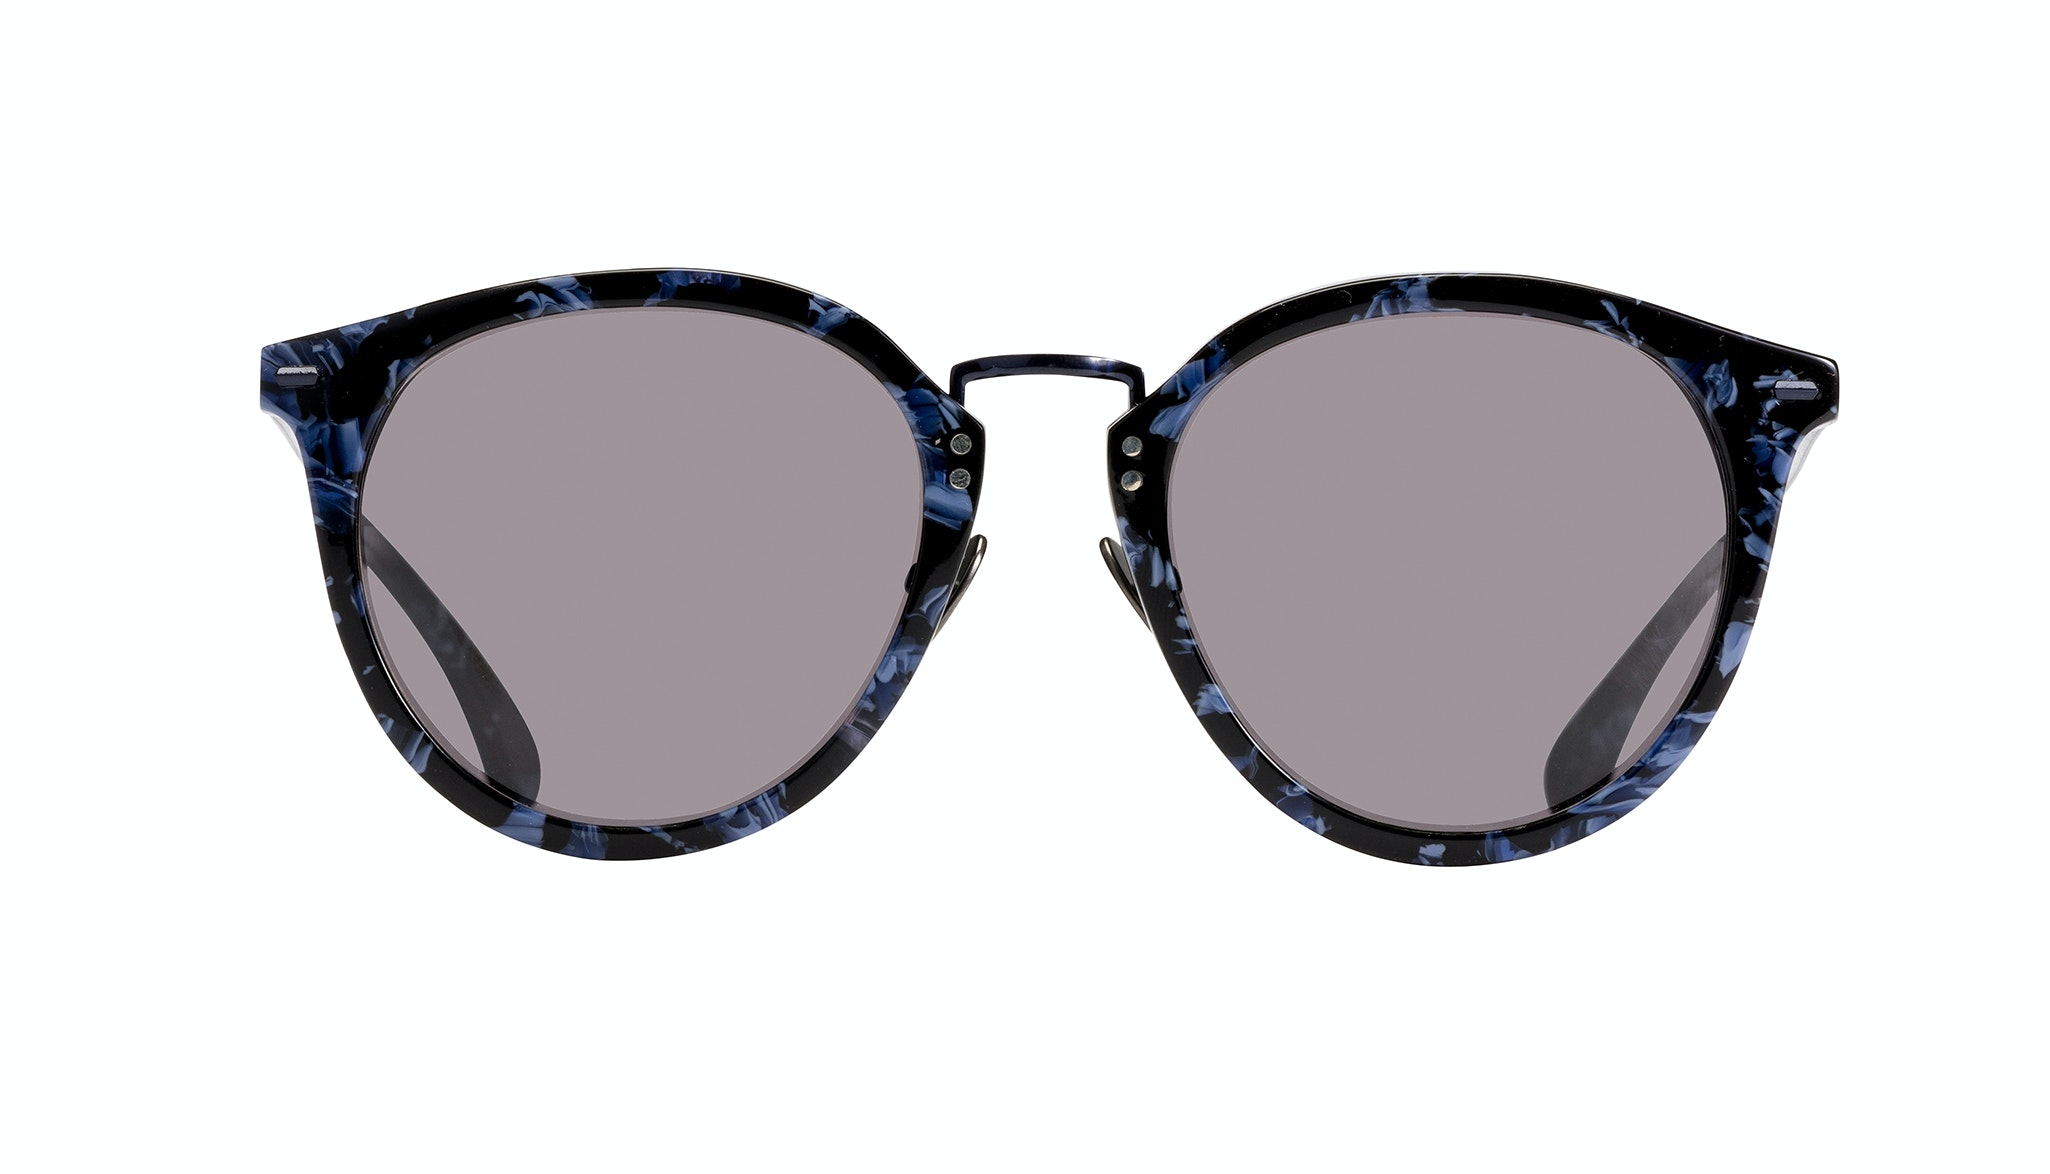 Affordable Fashion Glasses Round Sunglasses Women Poppy Rey